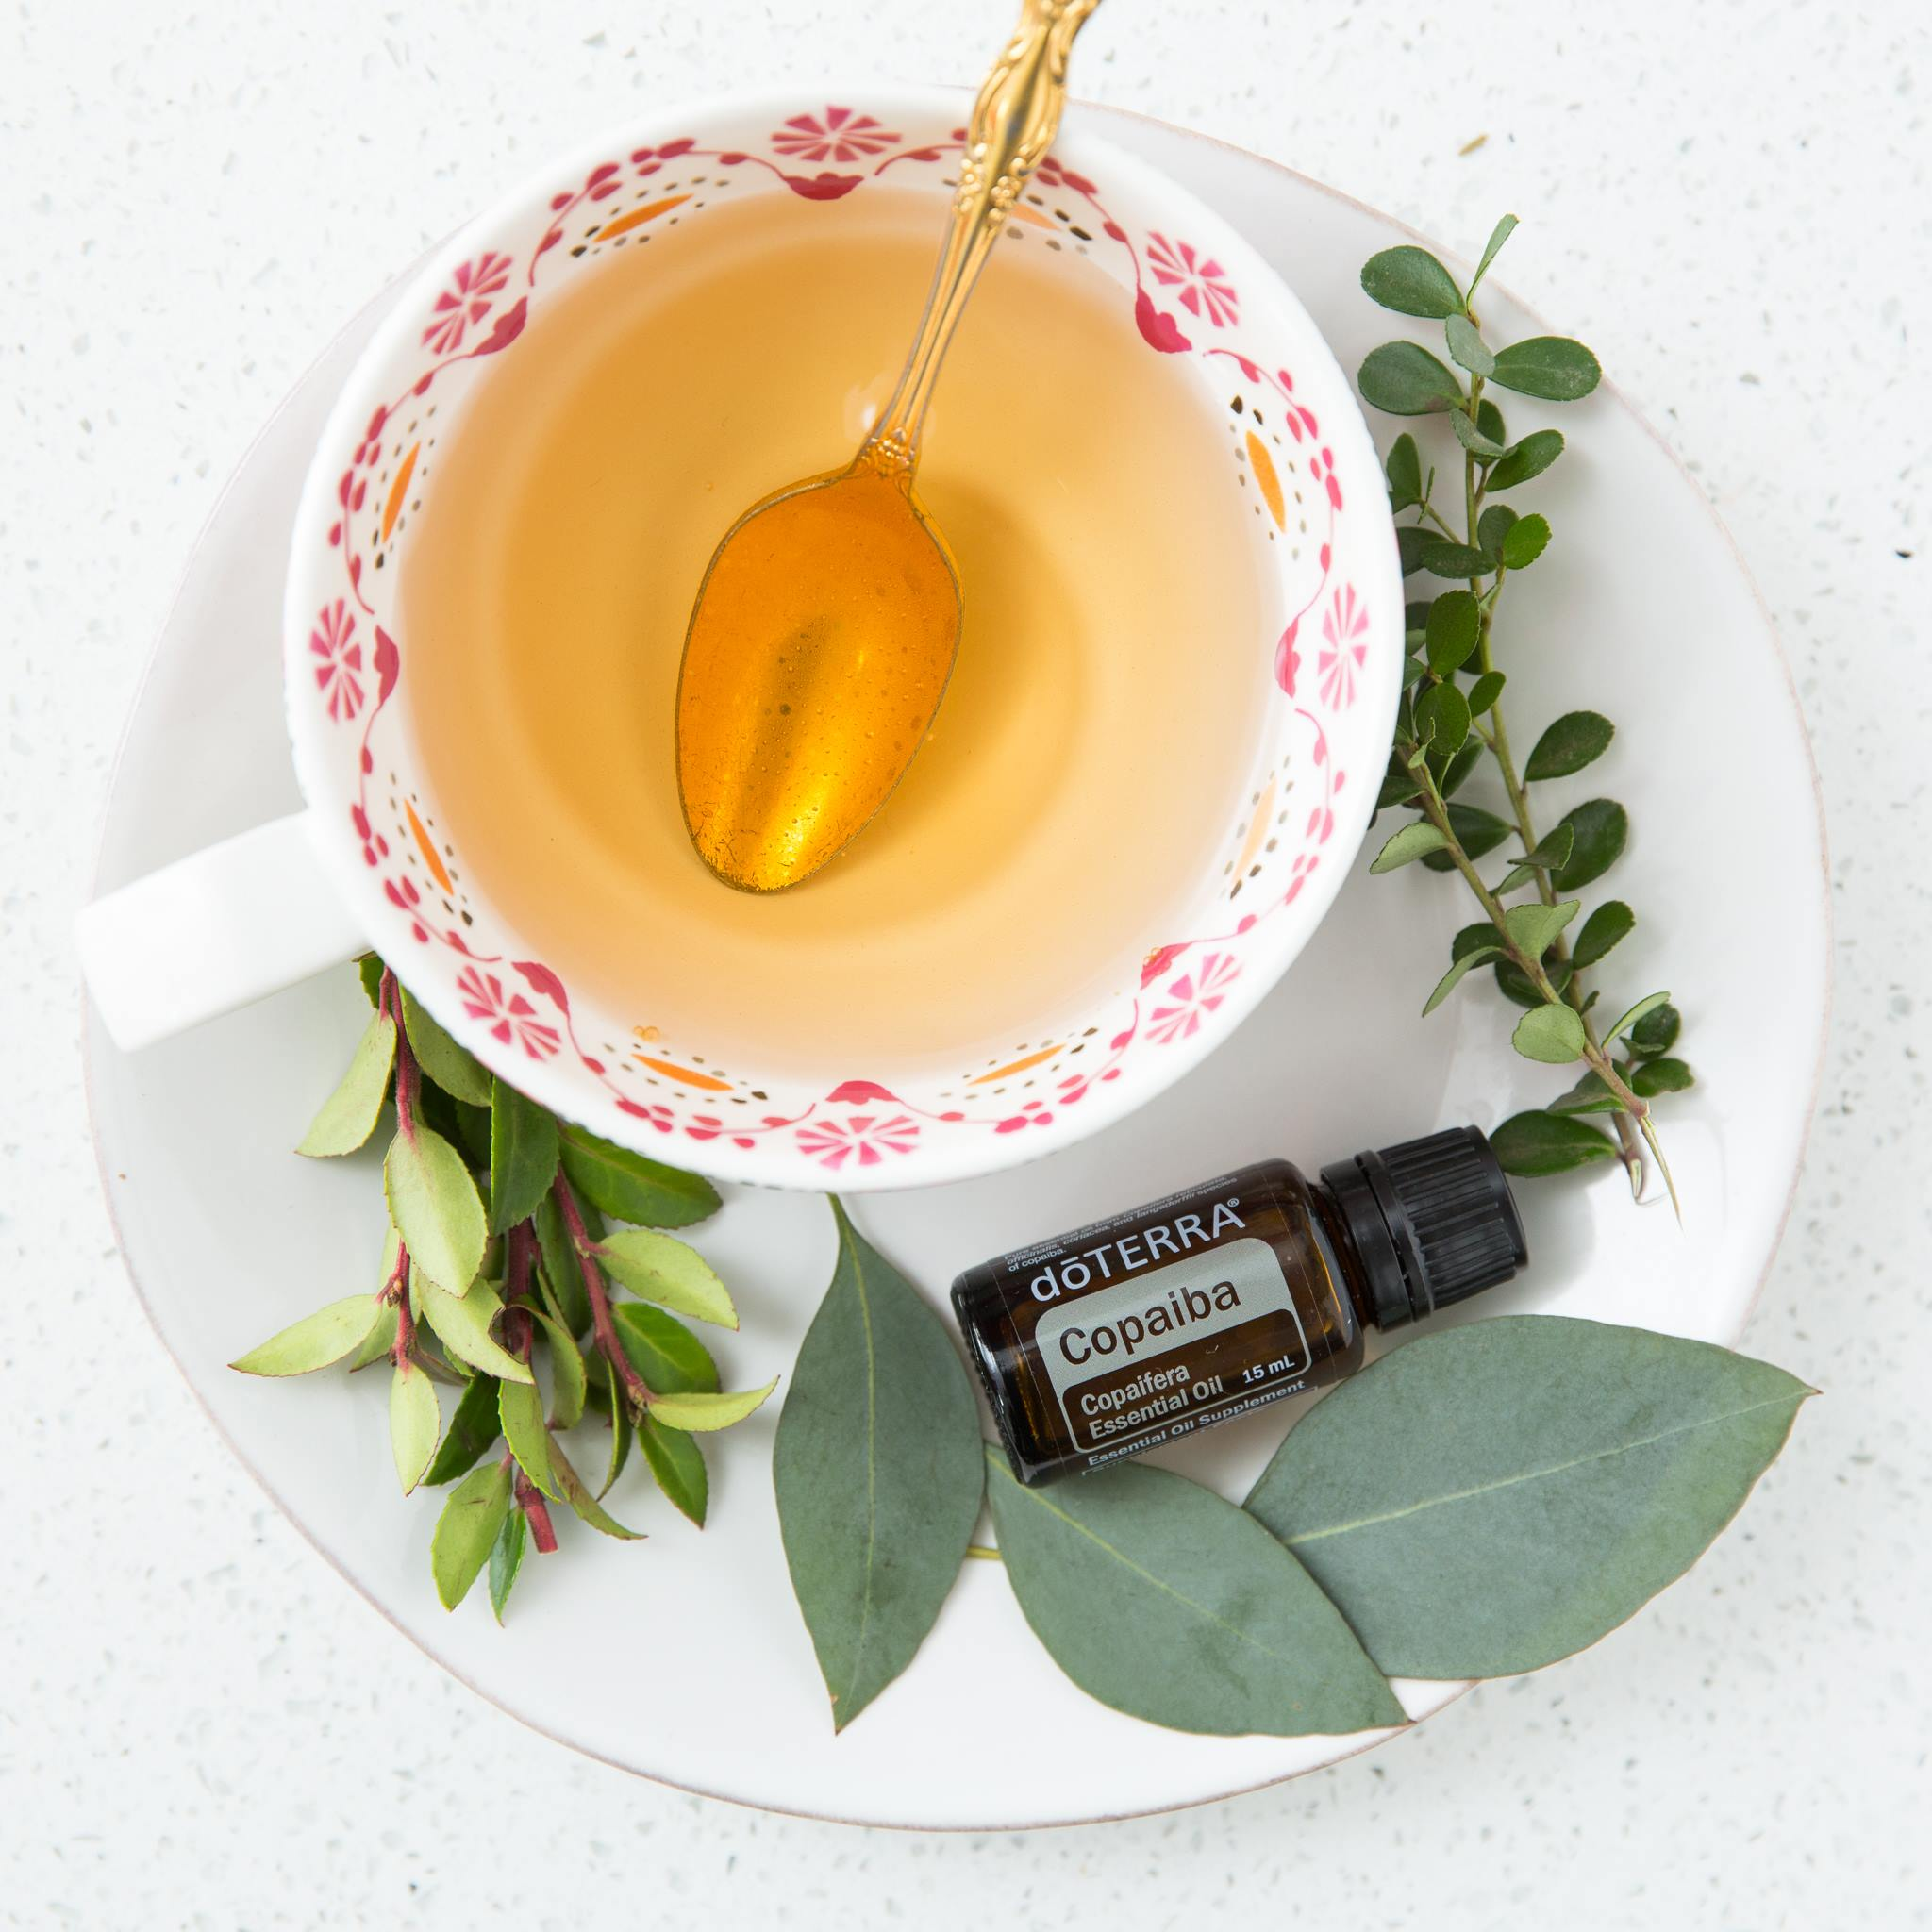 Copaiba Essential Oil Blend - Benefits and Remedies